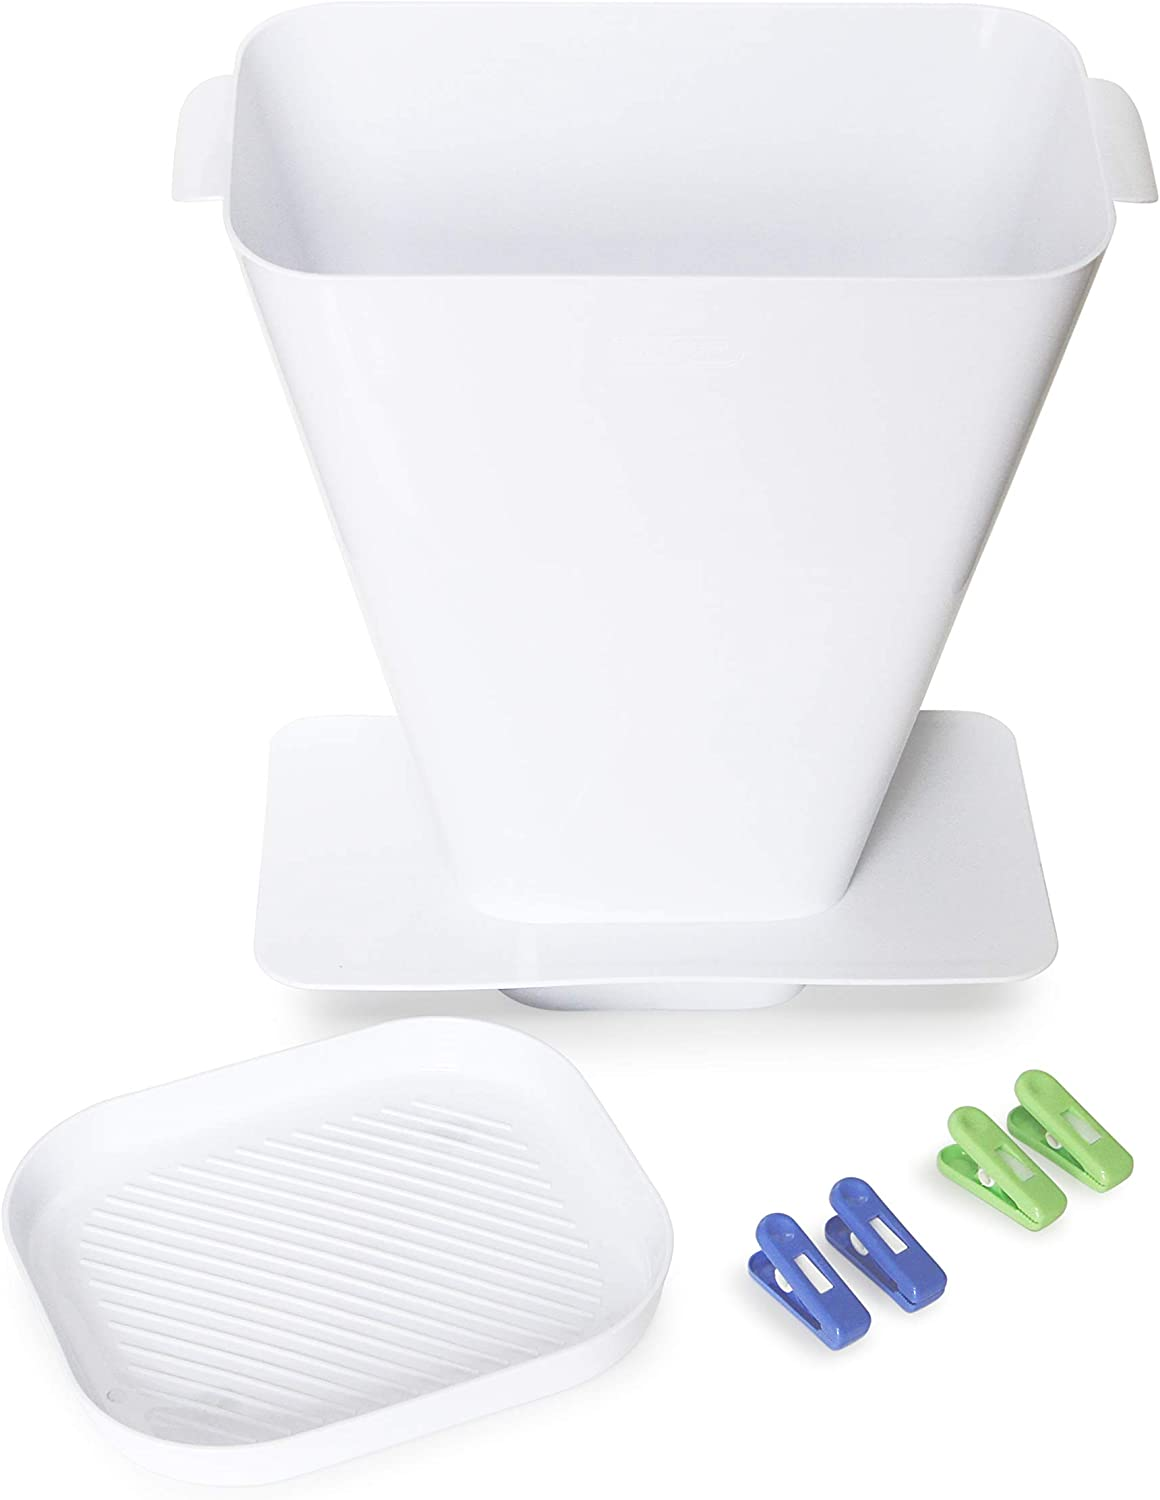 SimplyImagine SprayStand - Cloth Diaper Sprayer Splatter Shield - Contains Spray and Debris When Rinsing Cloth Diapers, Clothing, Shoes, and More in Toilet Spray Bucket Pail